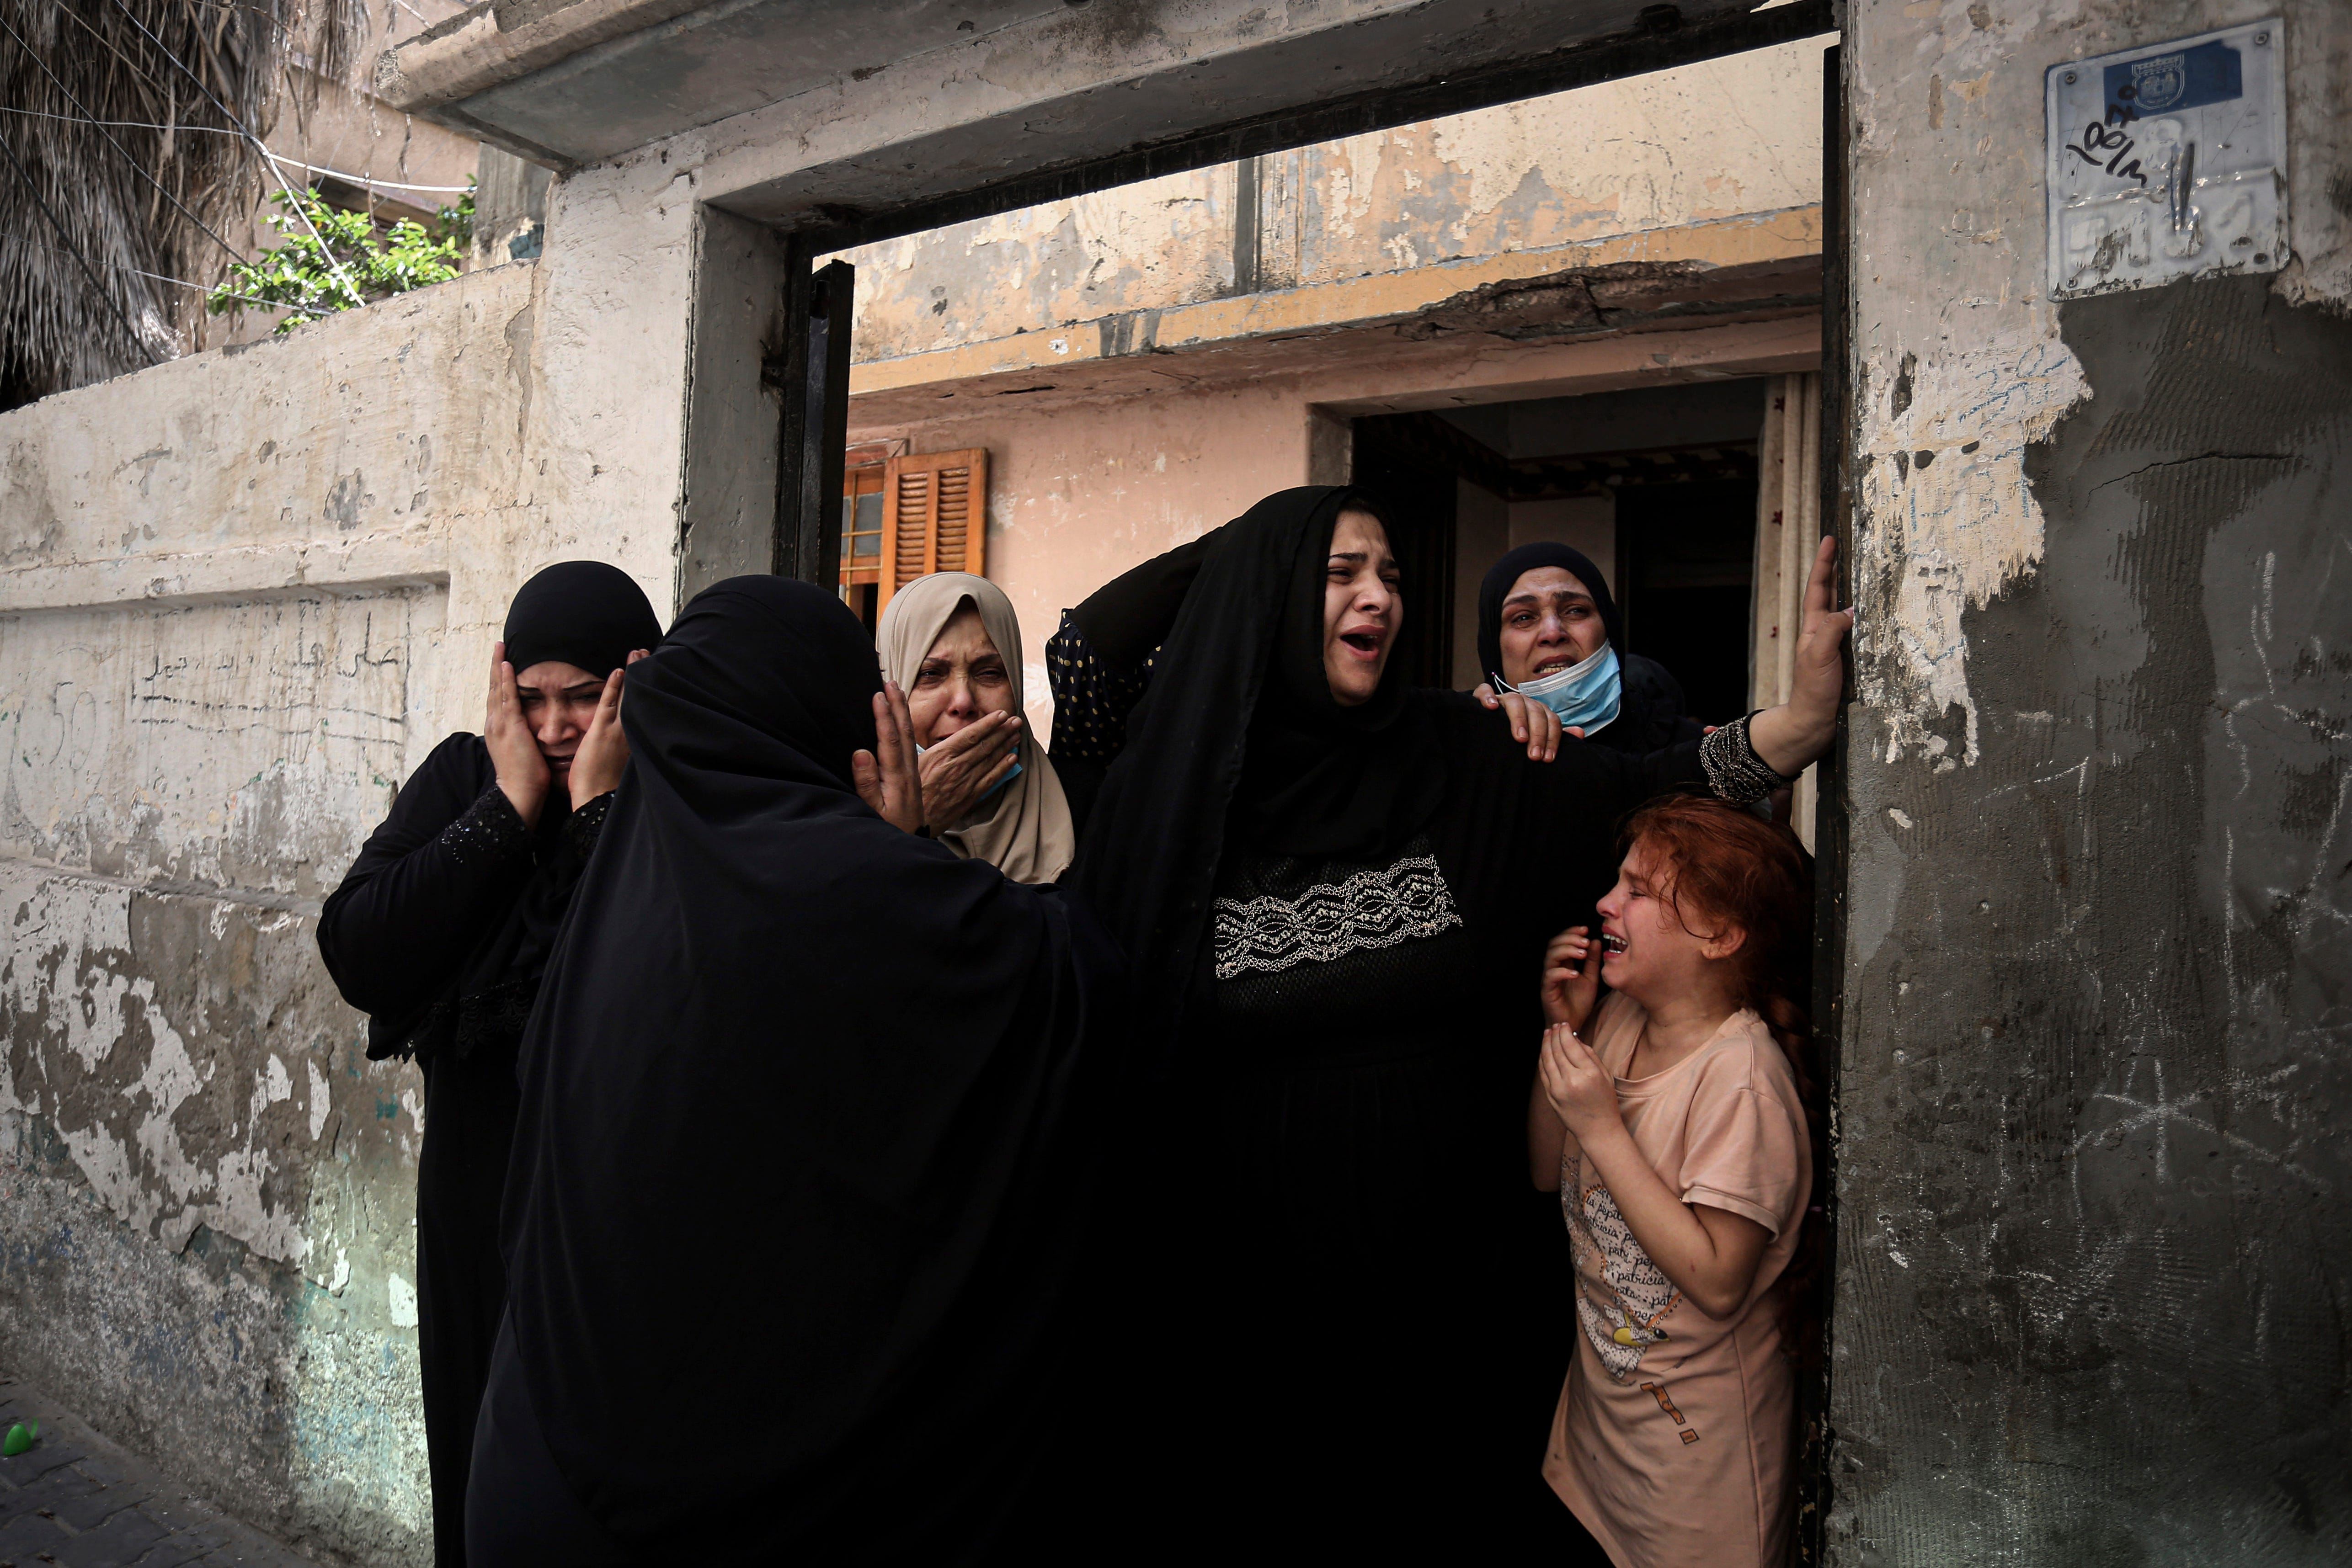 Israel unleashes strikes as expectations for truce rise 2